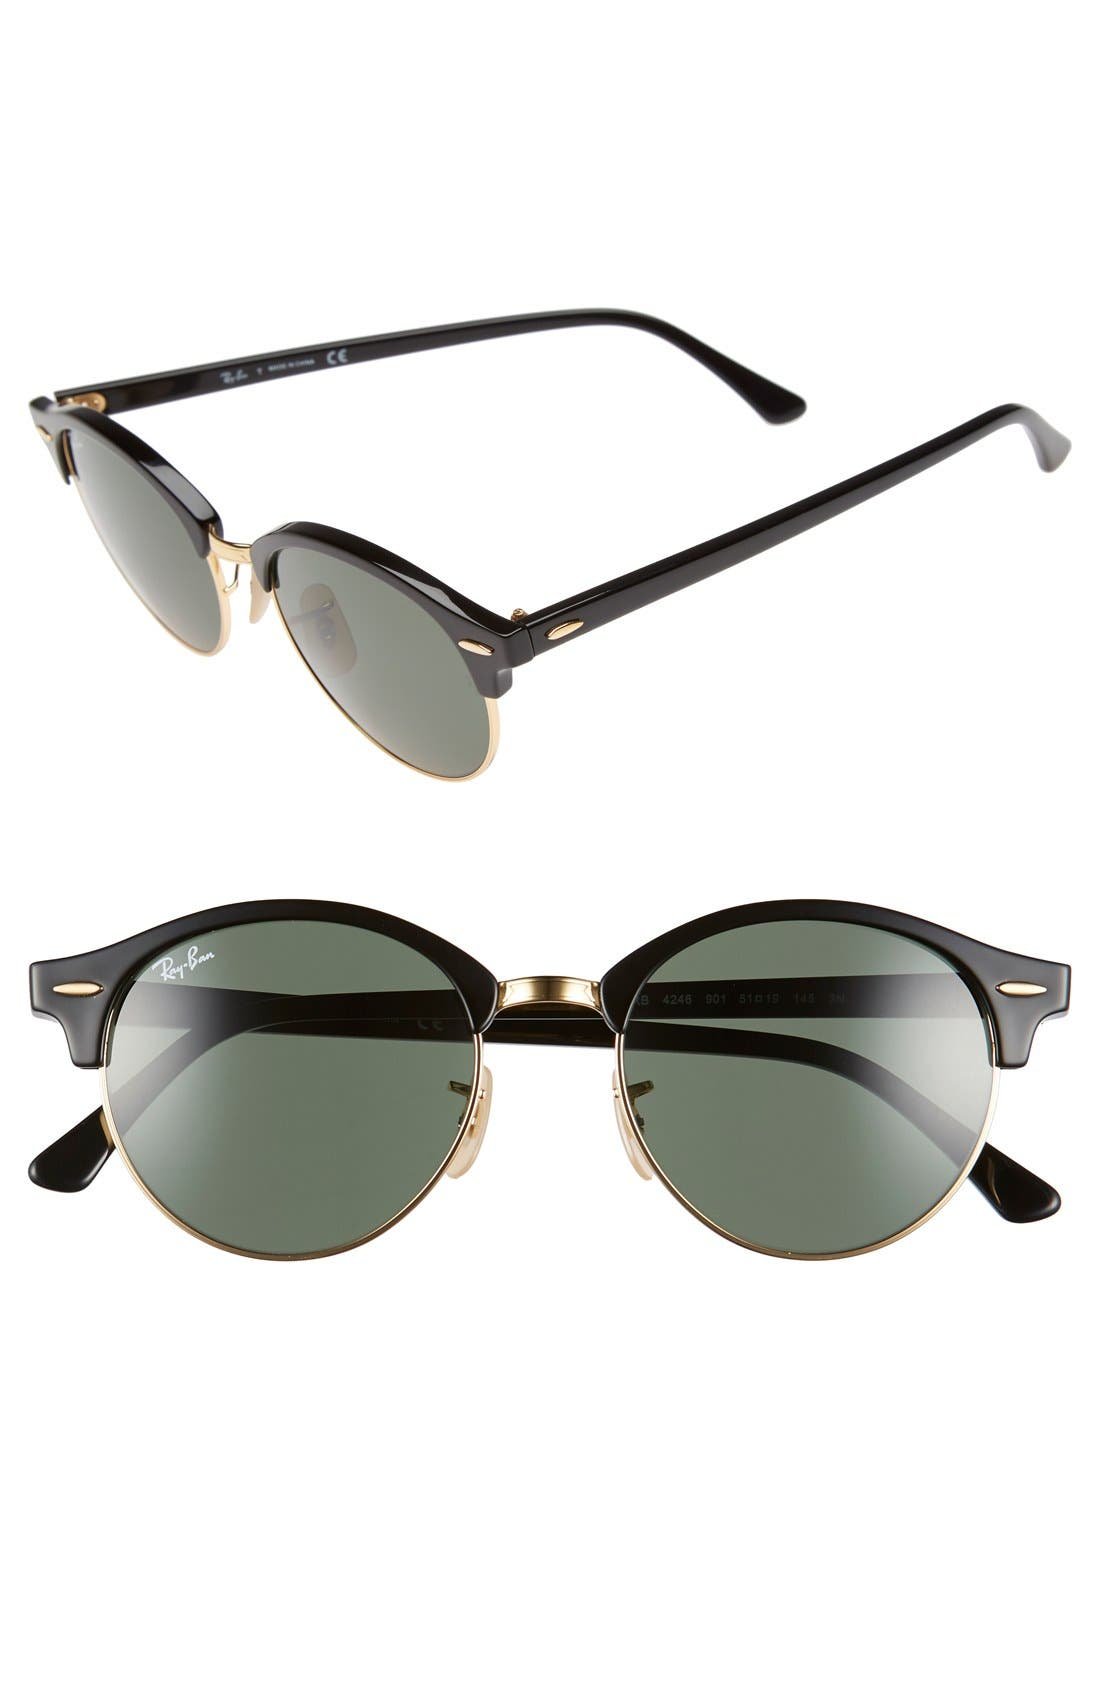 Main Image - Ray-Ban Clubround 51mm Round Sunglasses